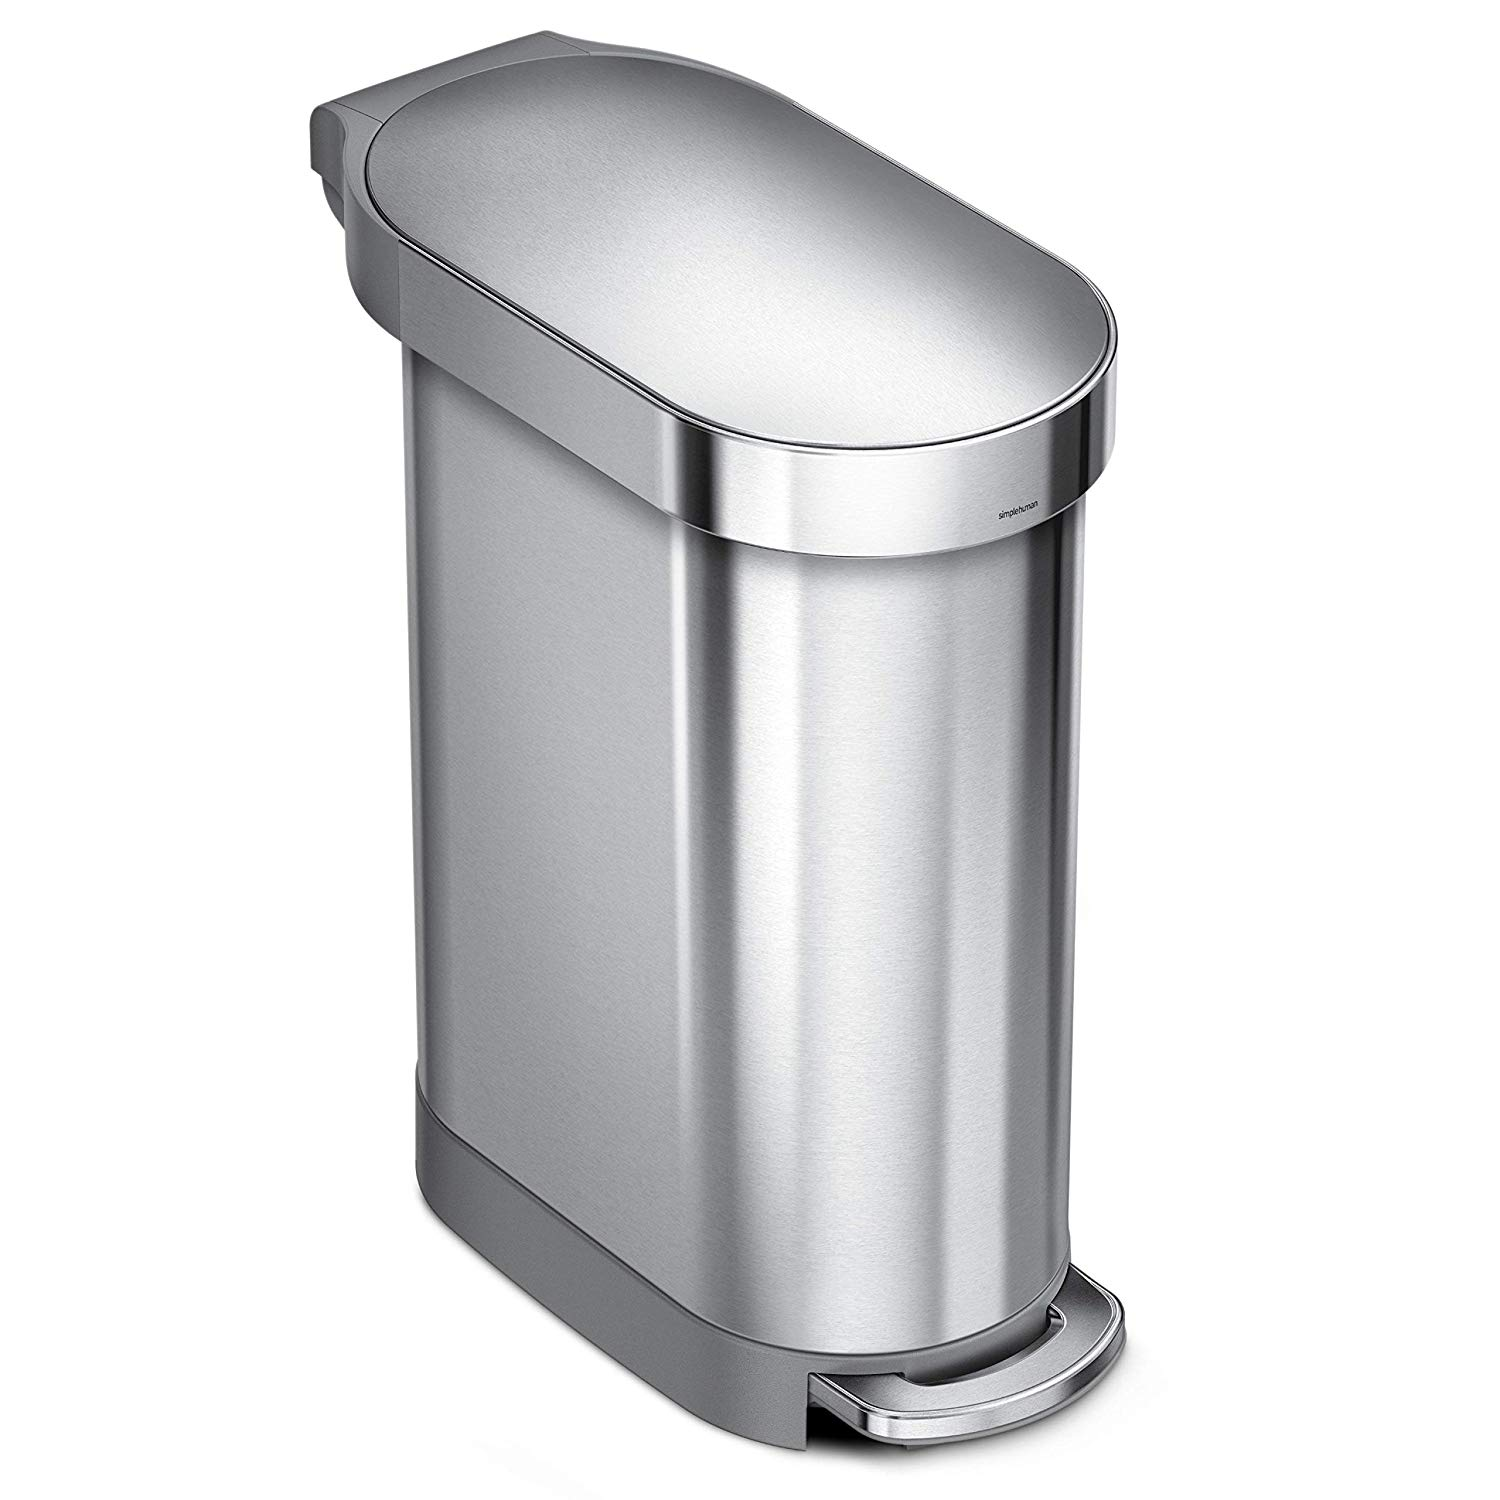 Boy stepping on garbage can pedal clipart picture free stock simplehuman 45 Liter / 12 Gallon Stainless Steel Slim Kitchen Step Can with  Liner Rim, Brushed Stainless Steel picture free stock